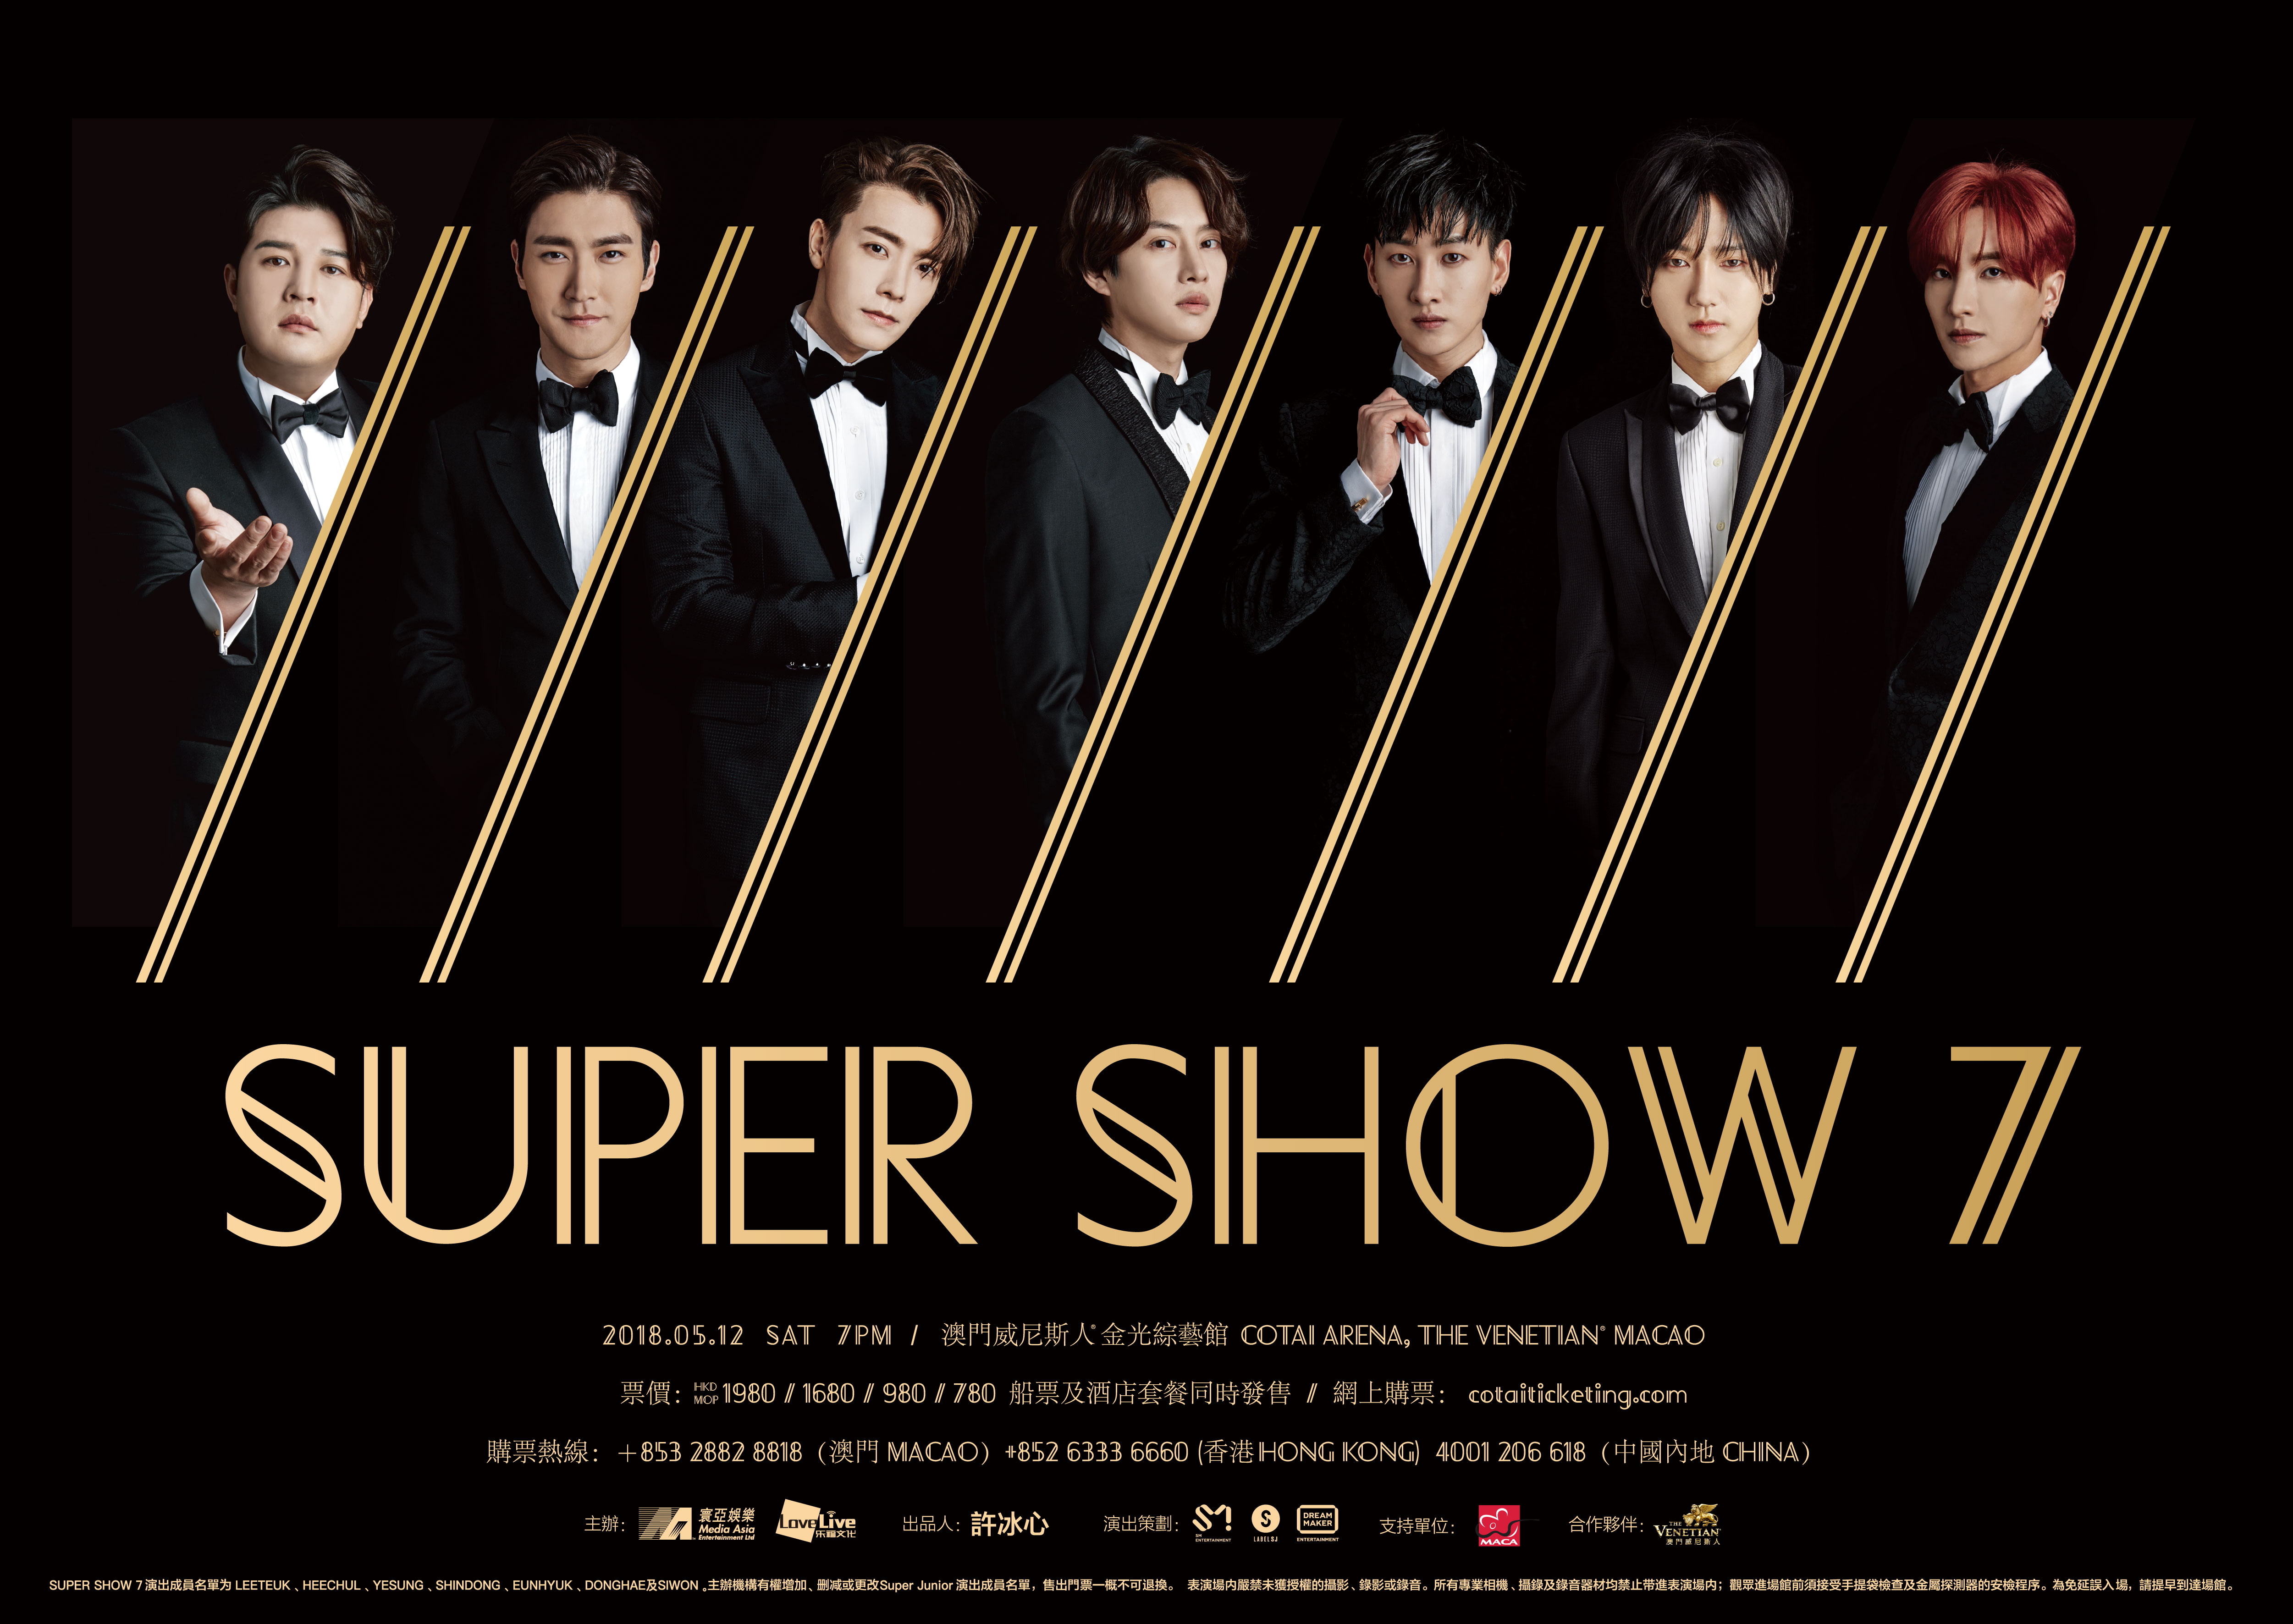 SUPER SHOW 7' IN MACAO | The Venetian Macao | Cotai Arena